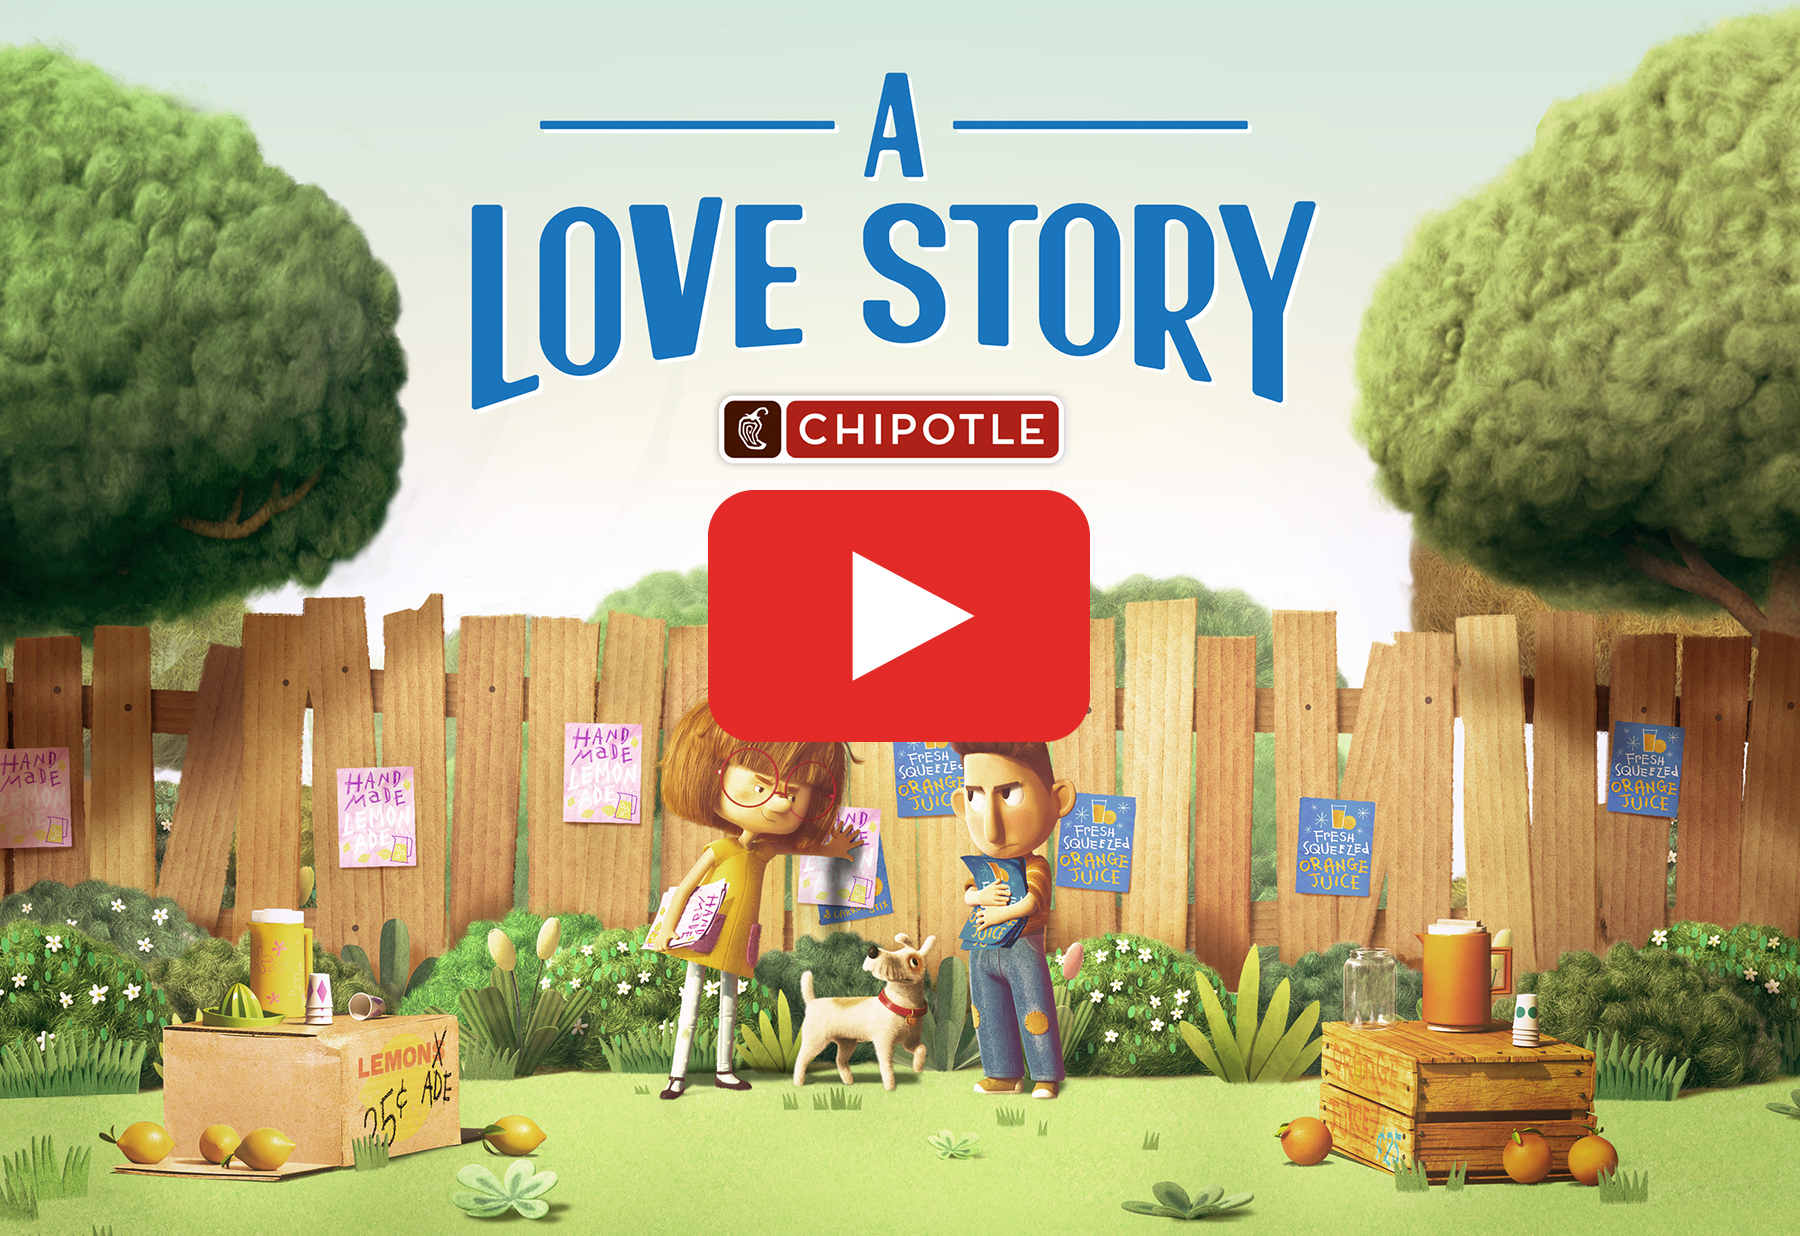 New Chipotle Love Story Ad Is Surprisingly Emotional